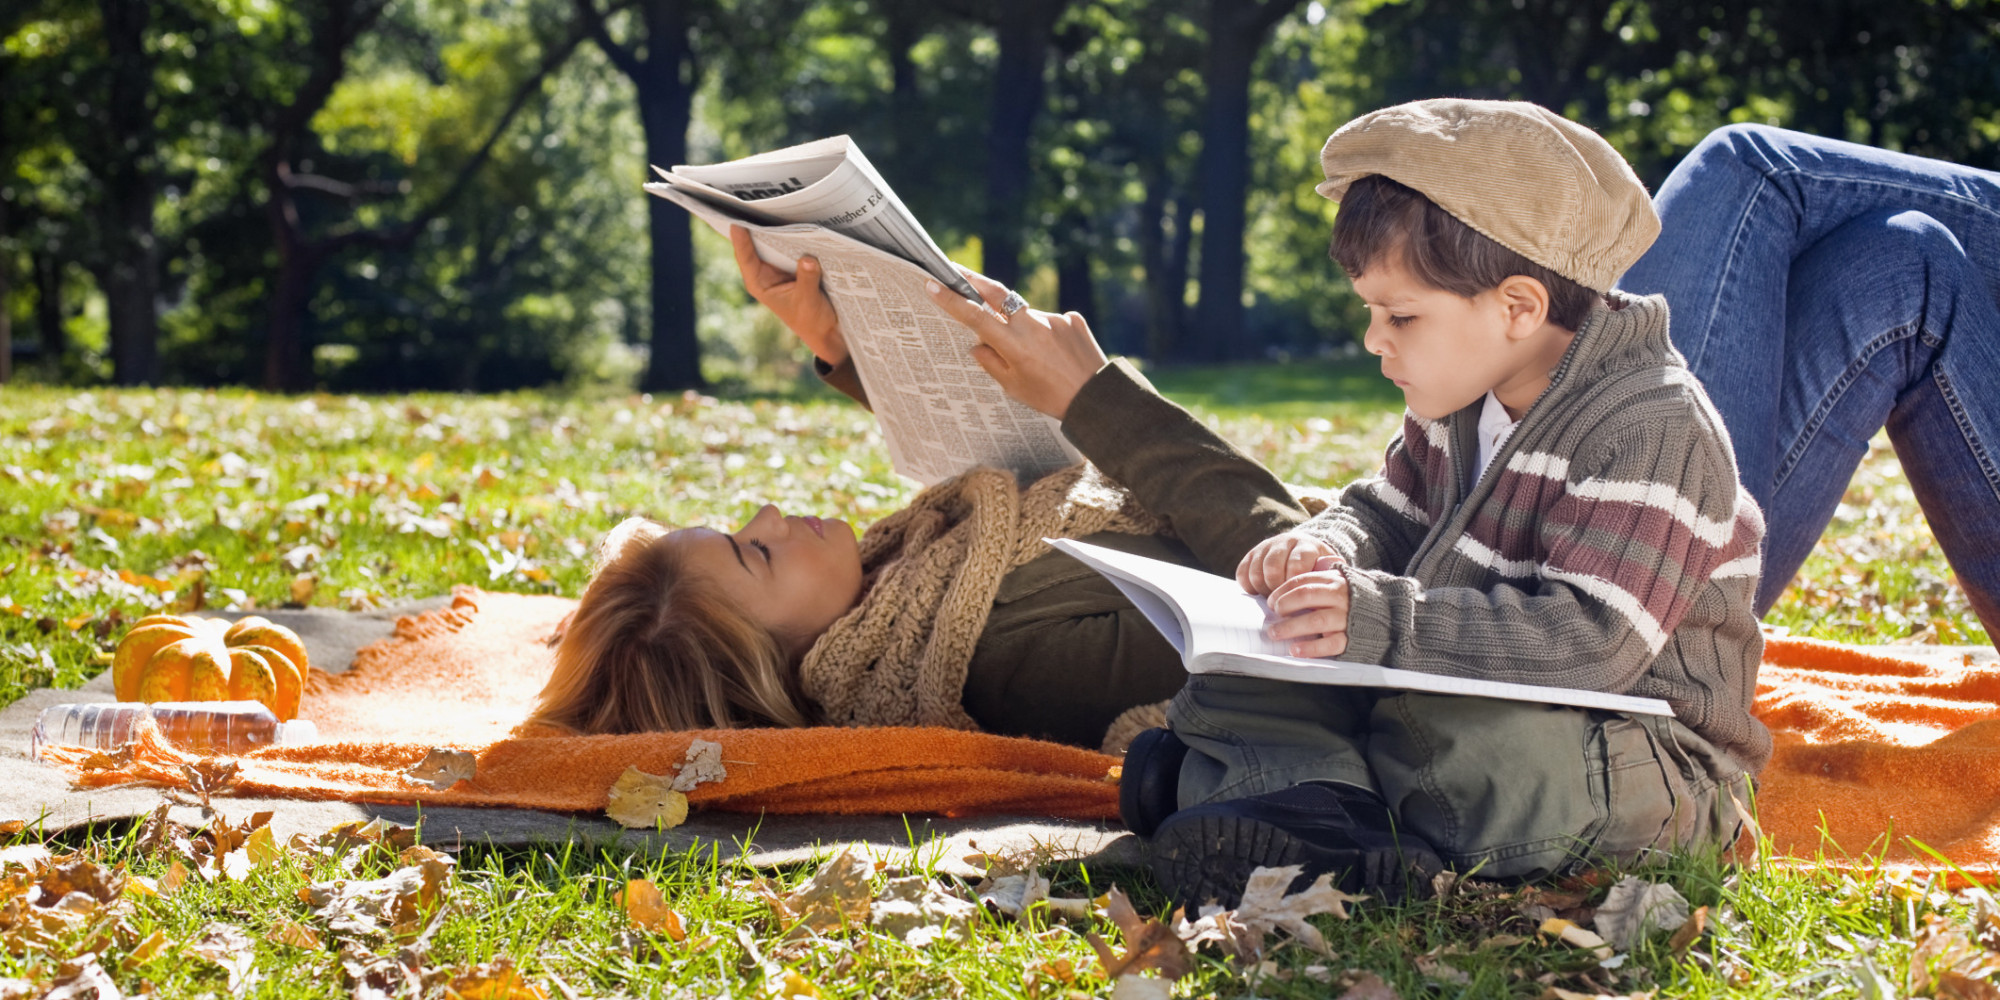 Summer Of Reading: How To Keep Your Kids Reading Once School's Out